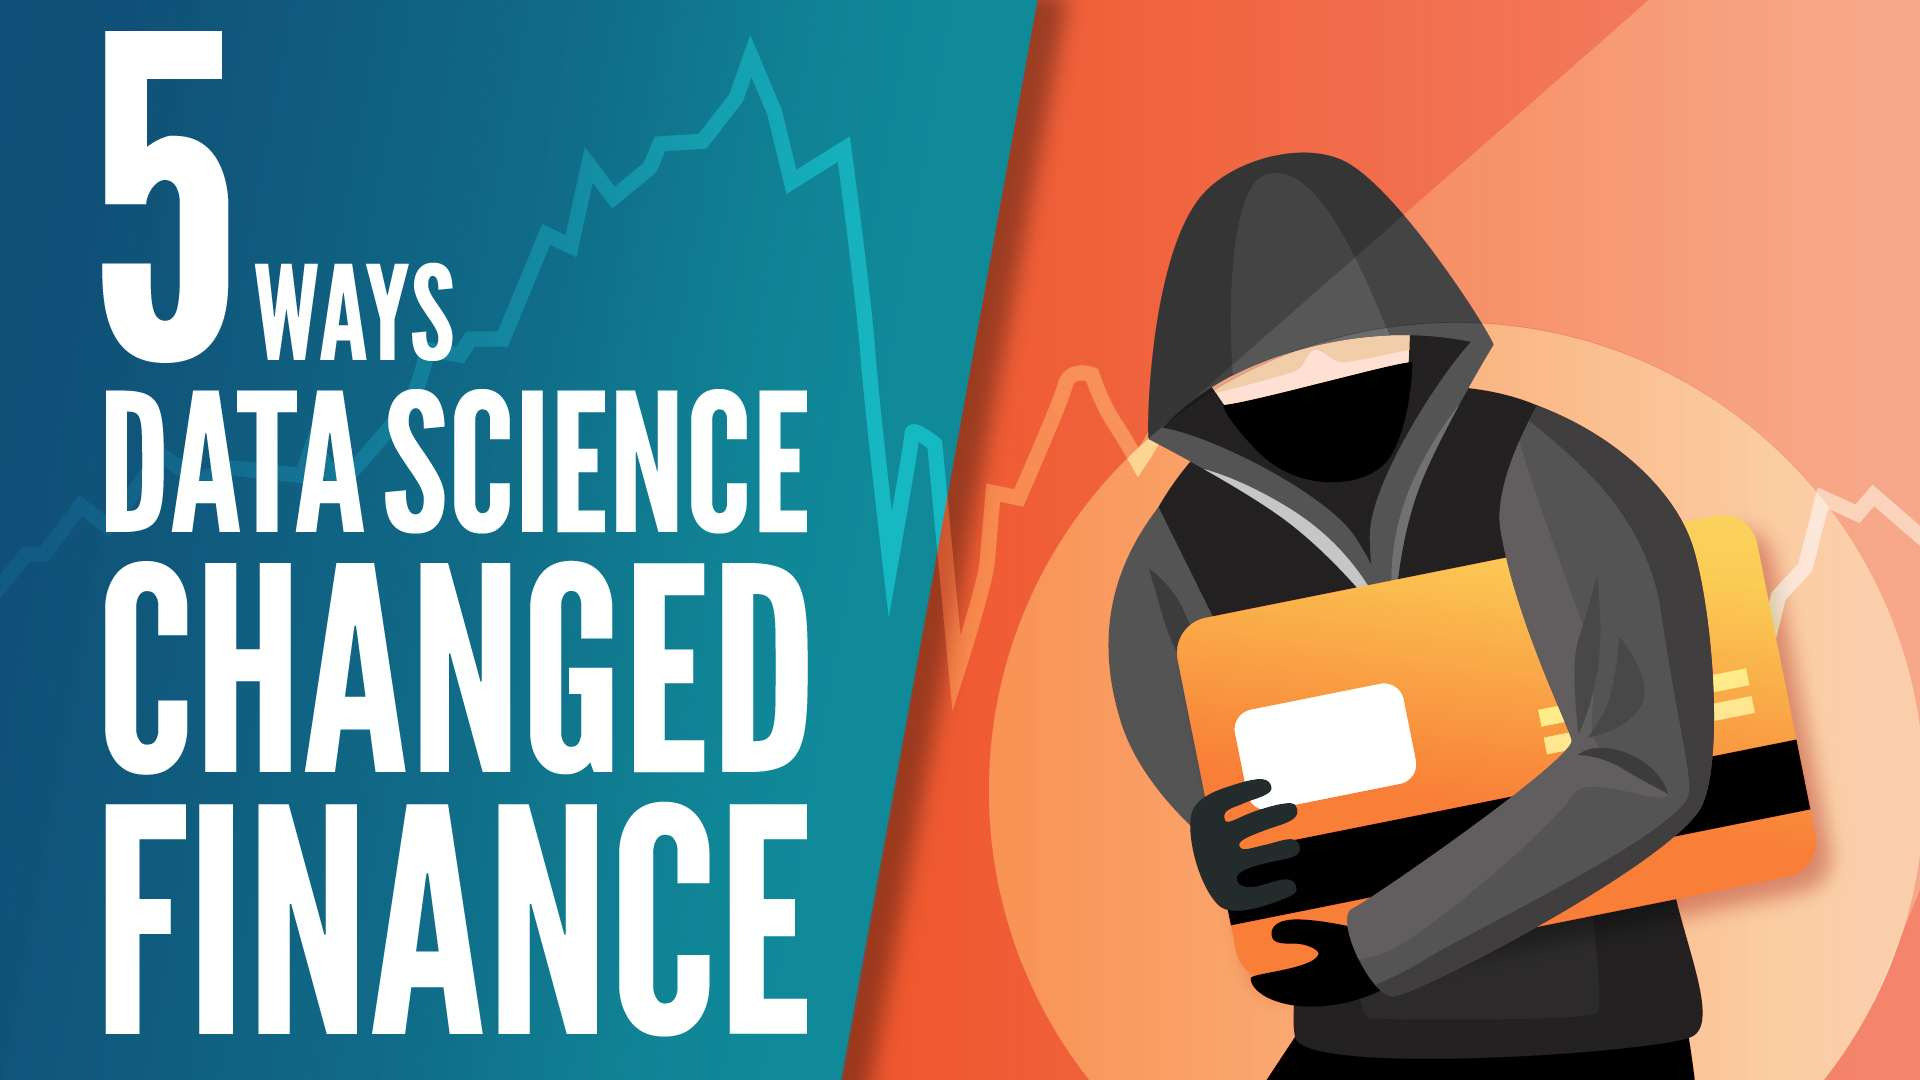 /data-science-in-finance-5-ways-it-changed-the-industry-aiet3y19 feature image